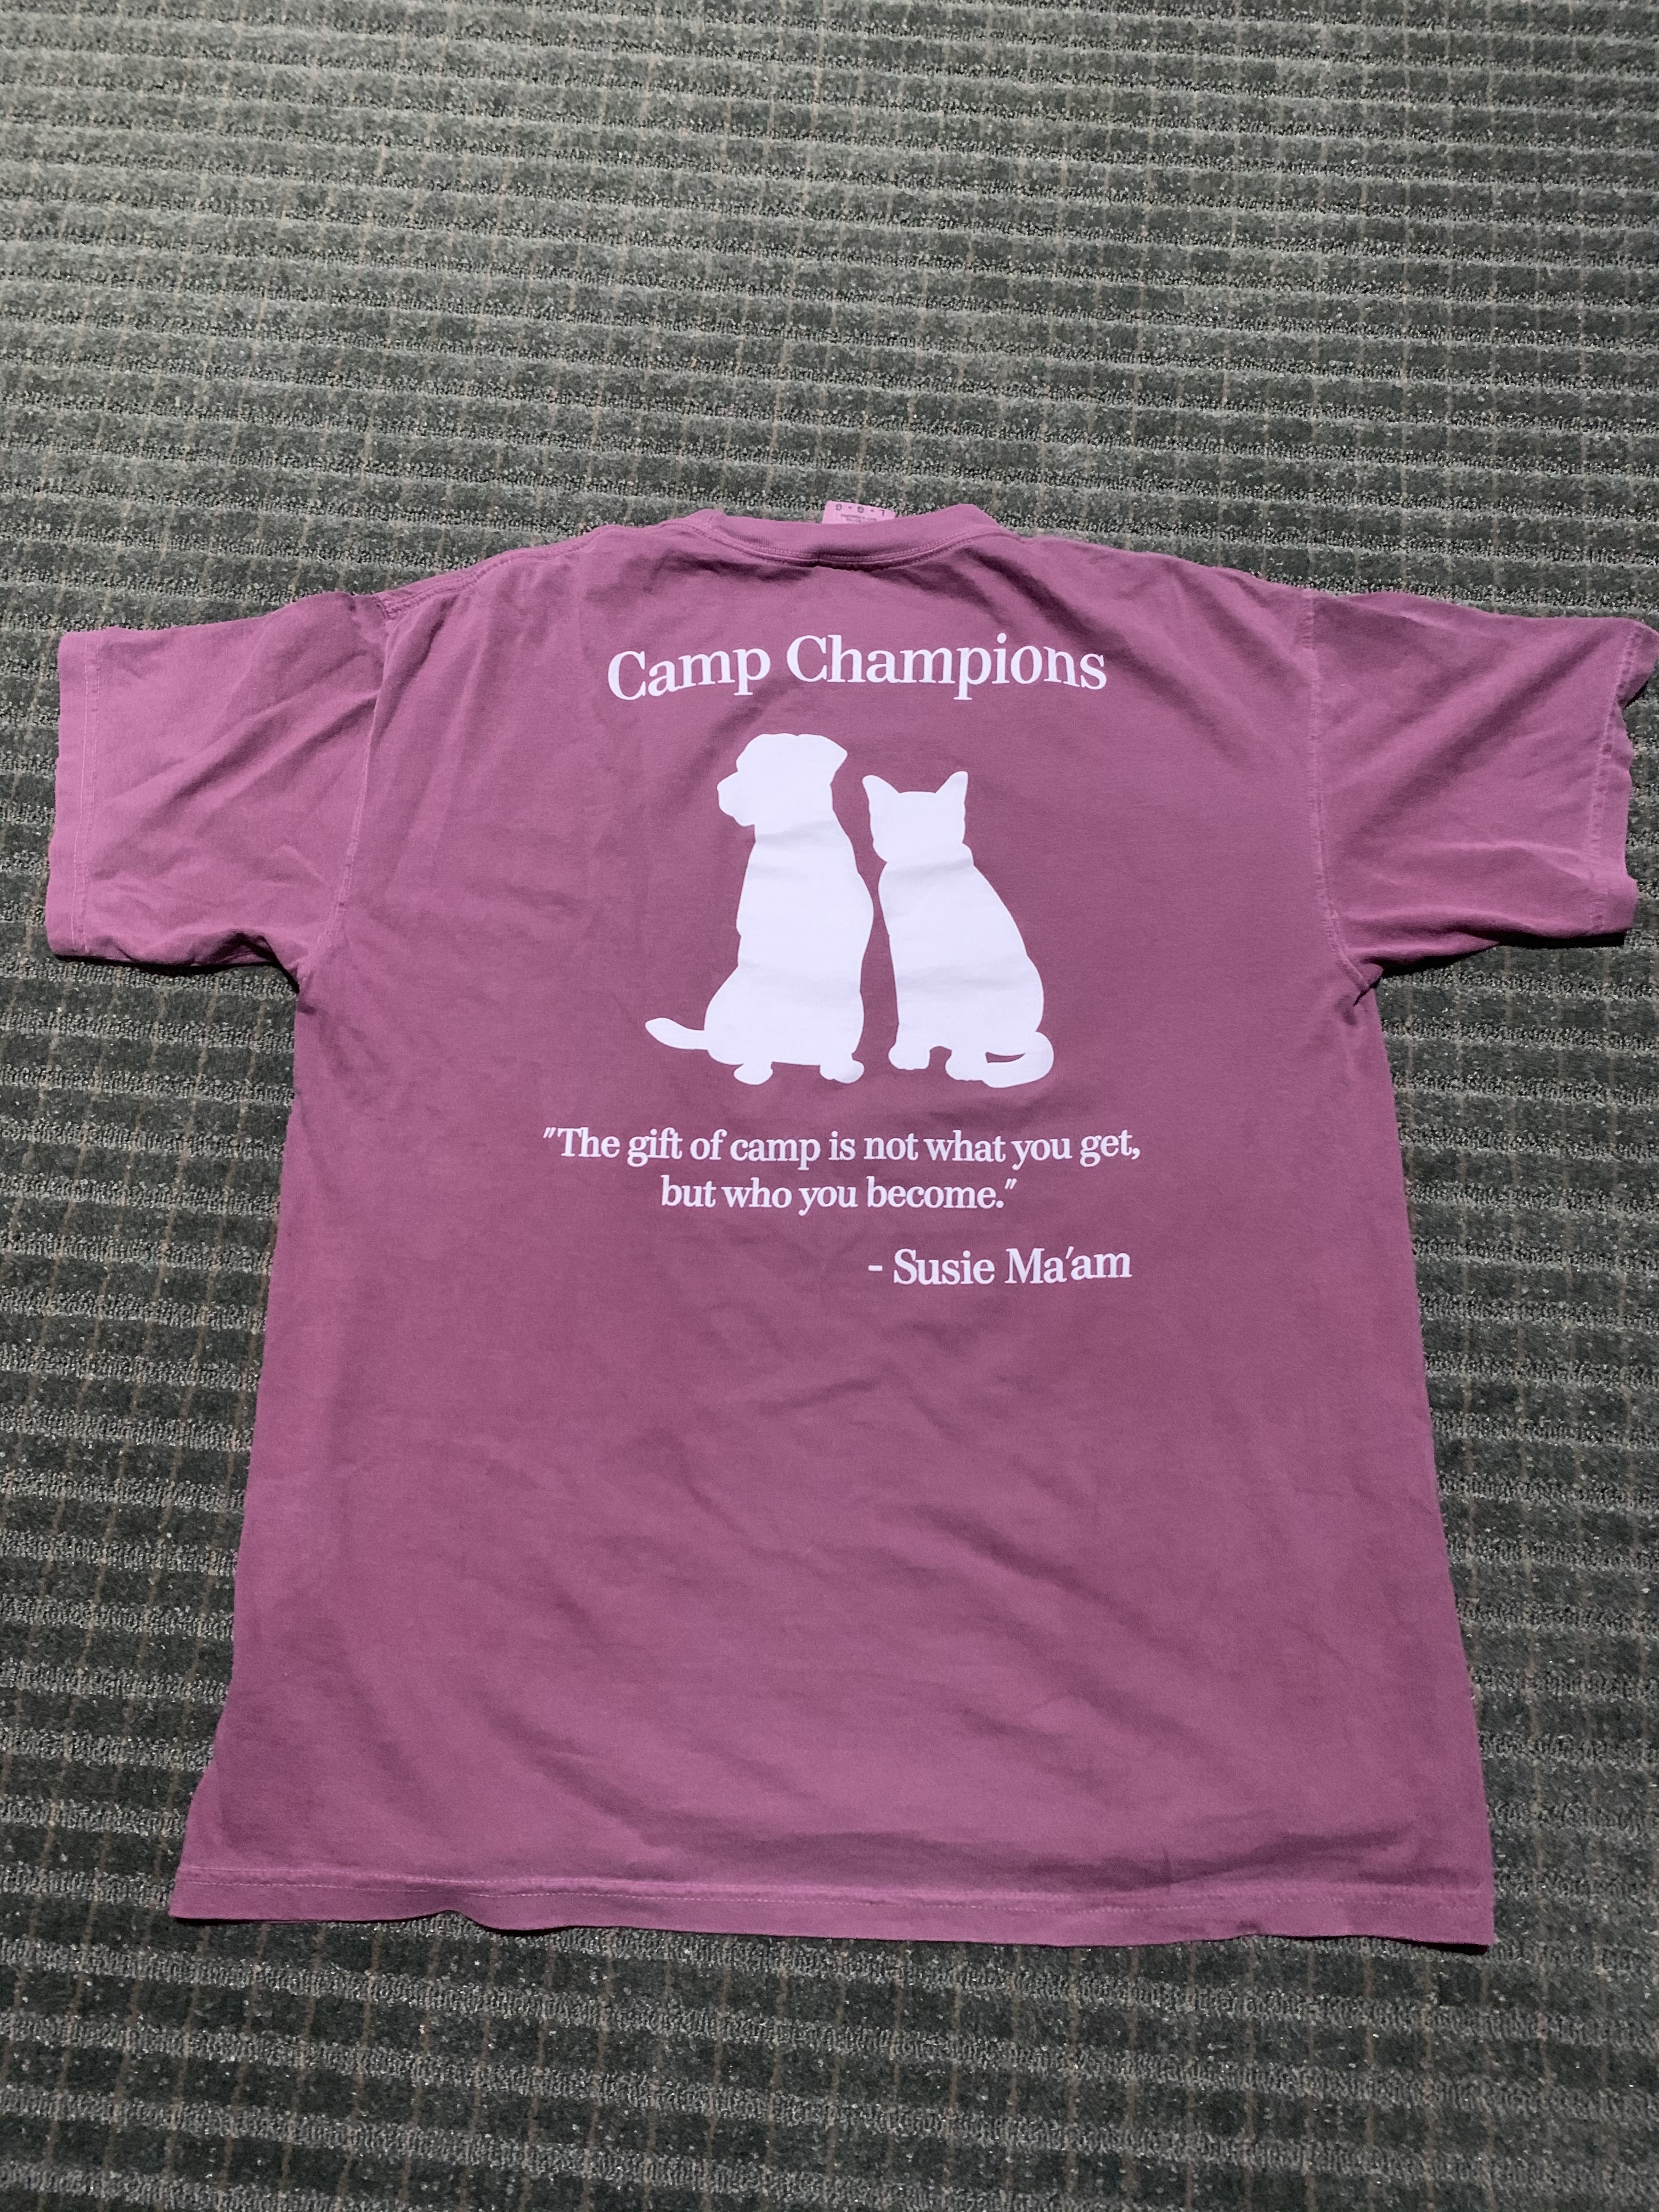 Scats quote shirt